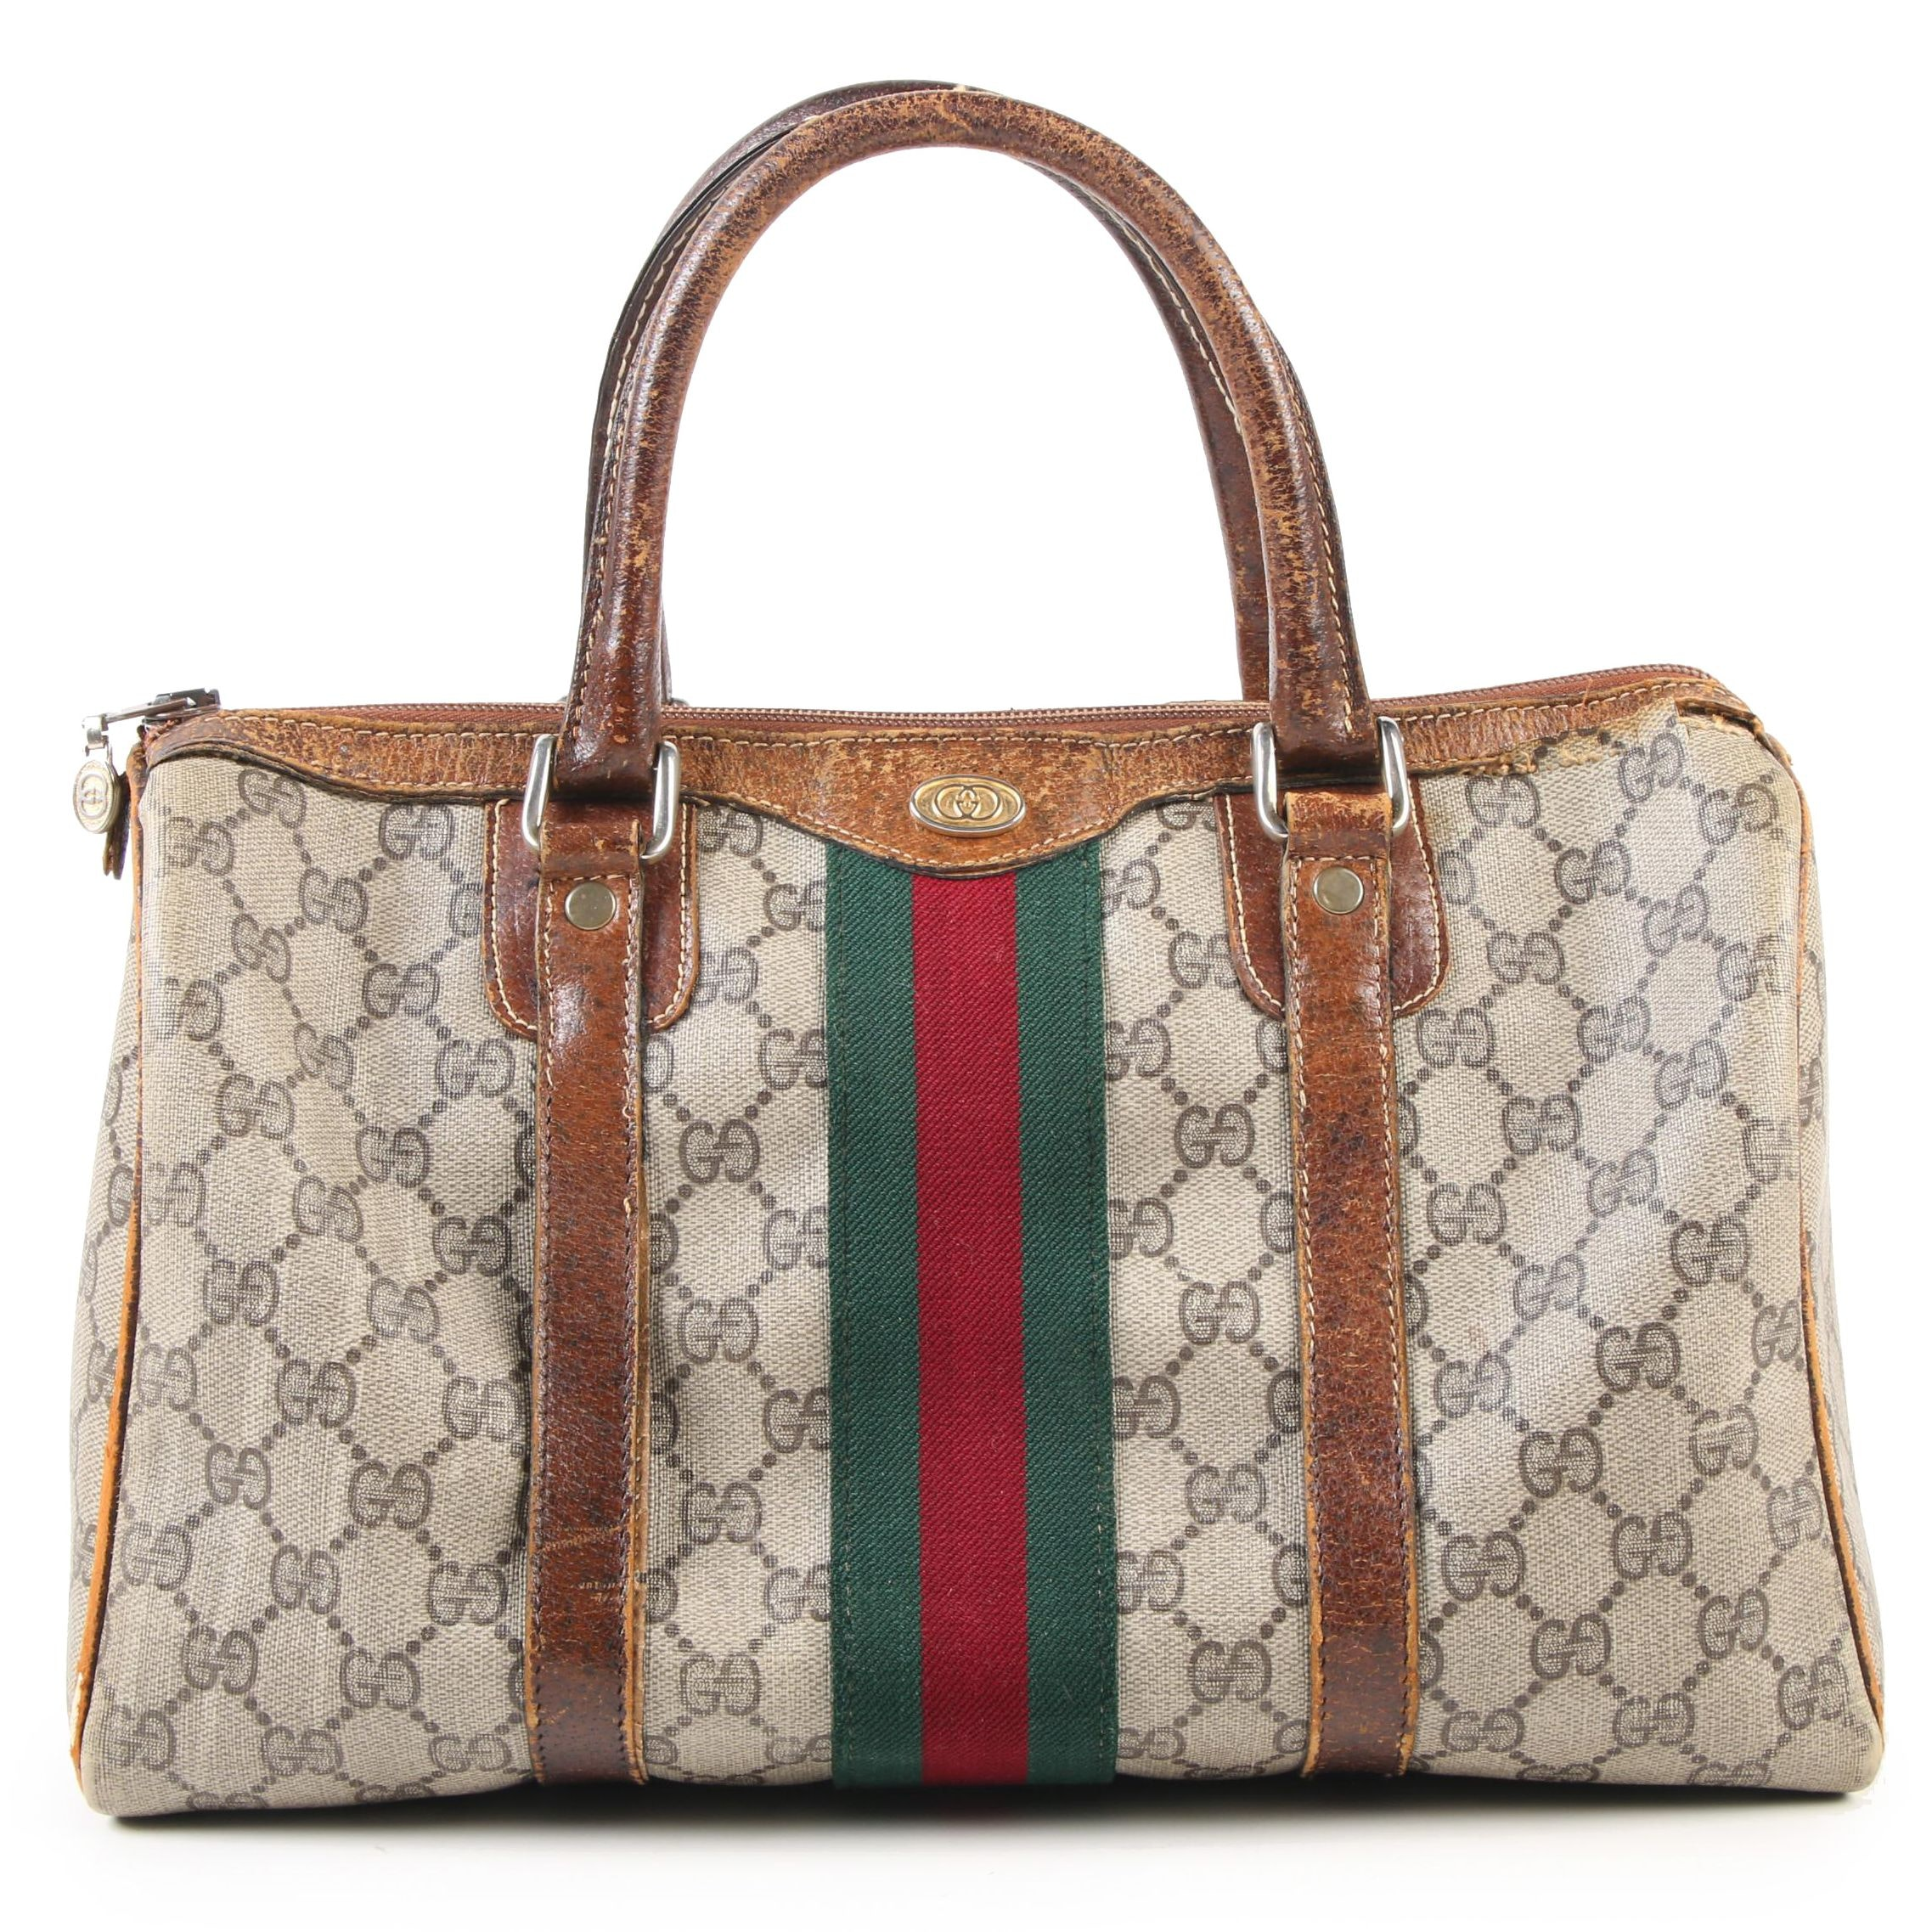 Gucci Boston Bag in GG Supreme Canvas and Leather, Vintage